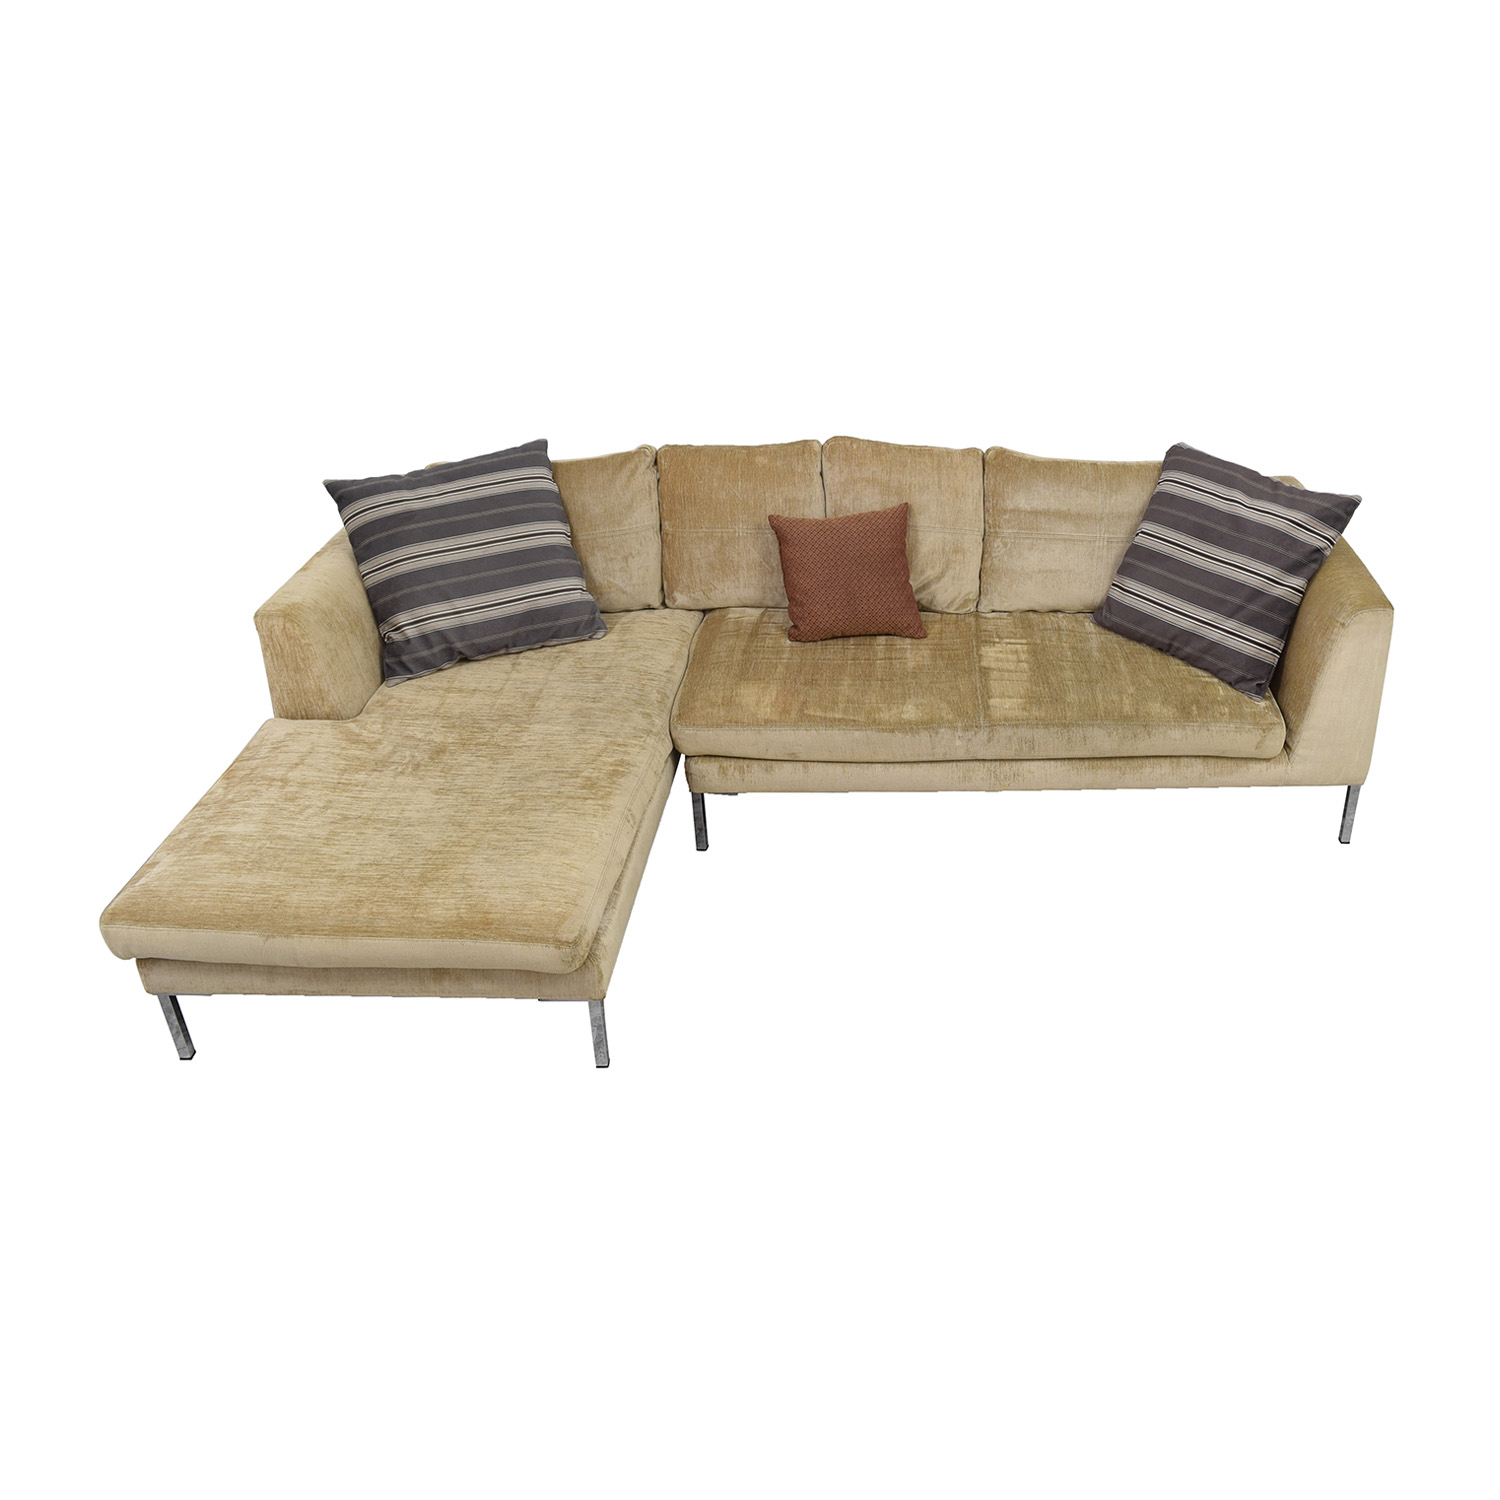 Modani Modani Beige Sectional Sofa on sale